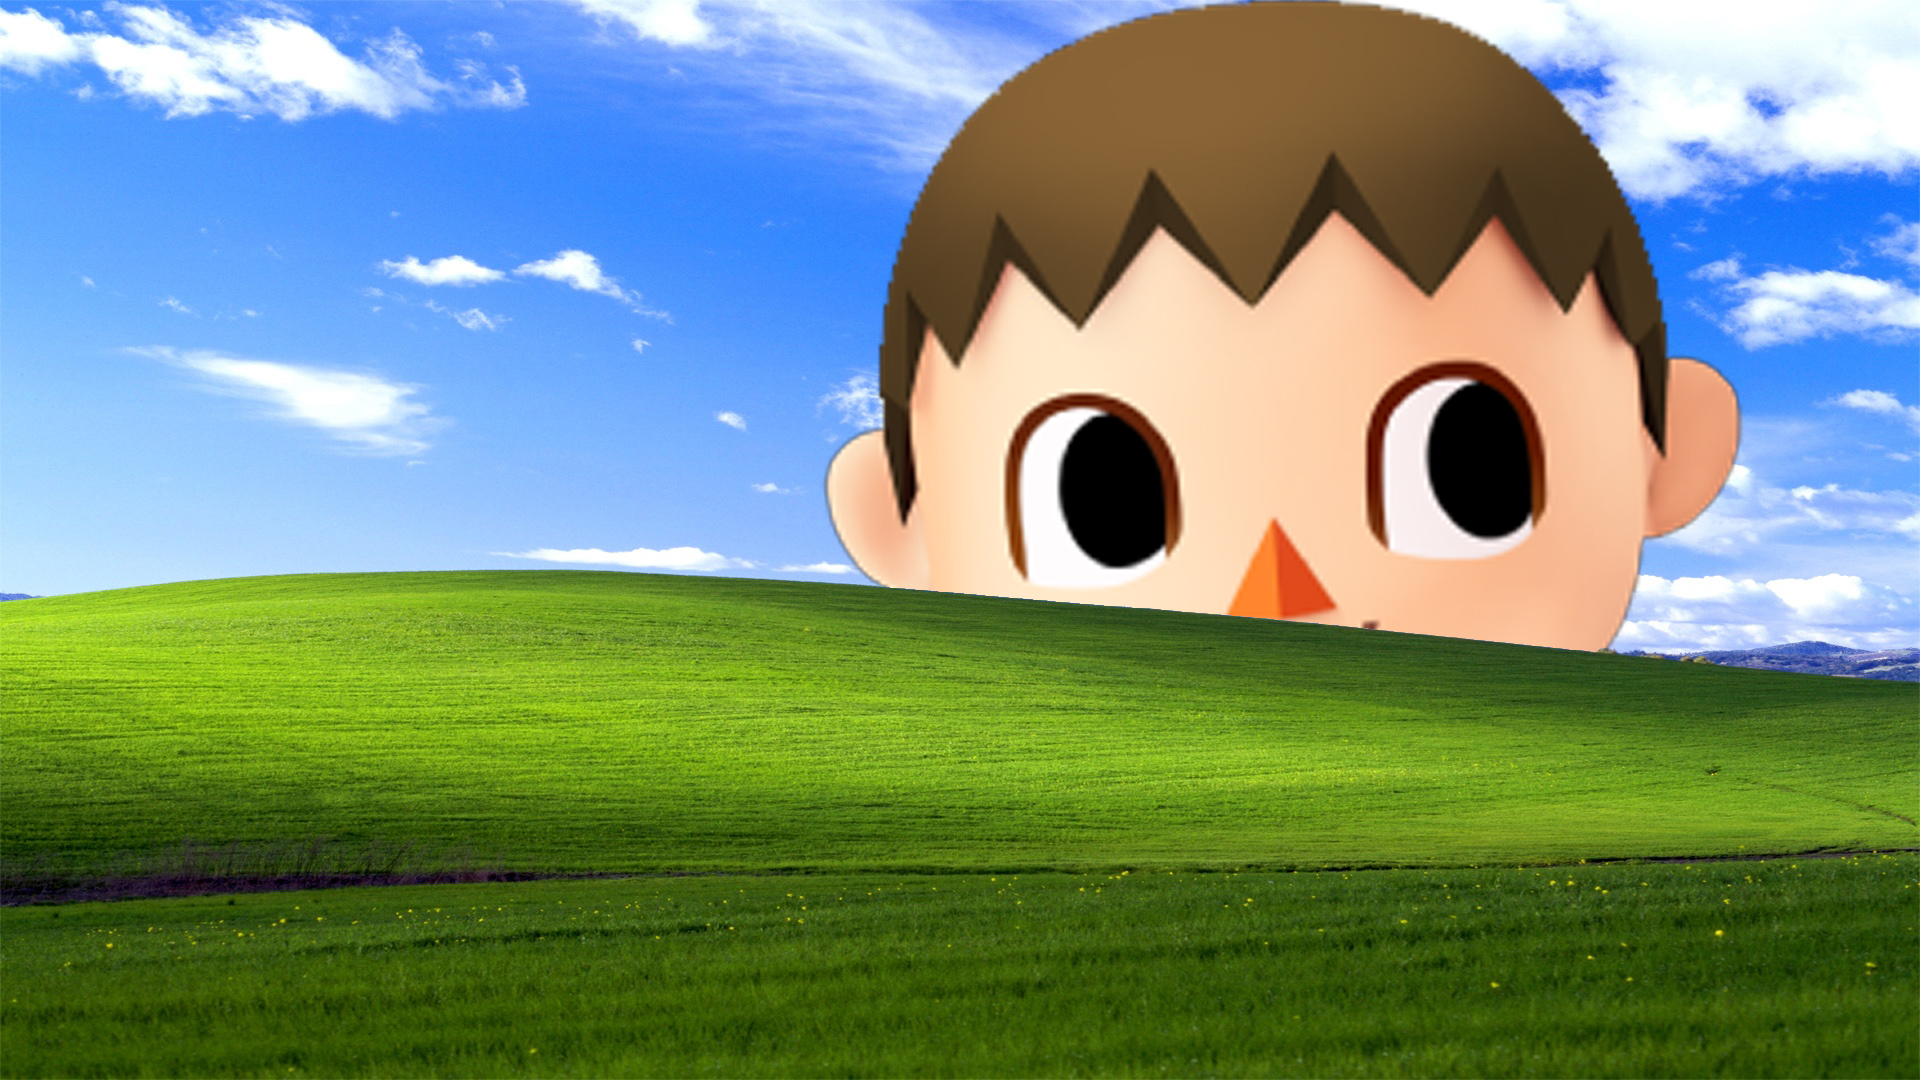 villager be hacking mah windows creepy villager know your meme